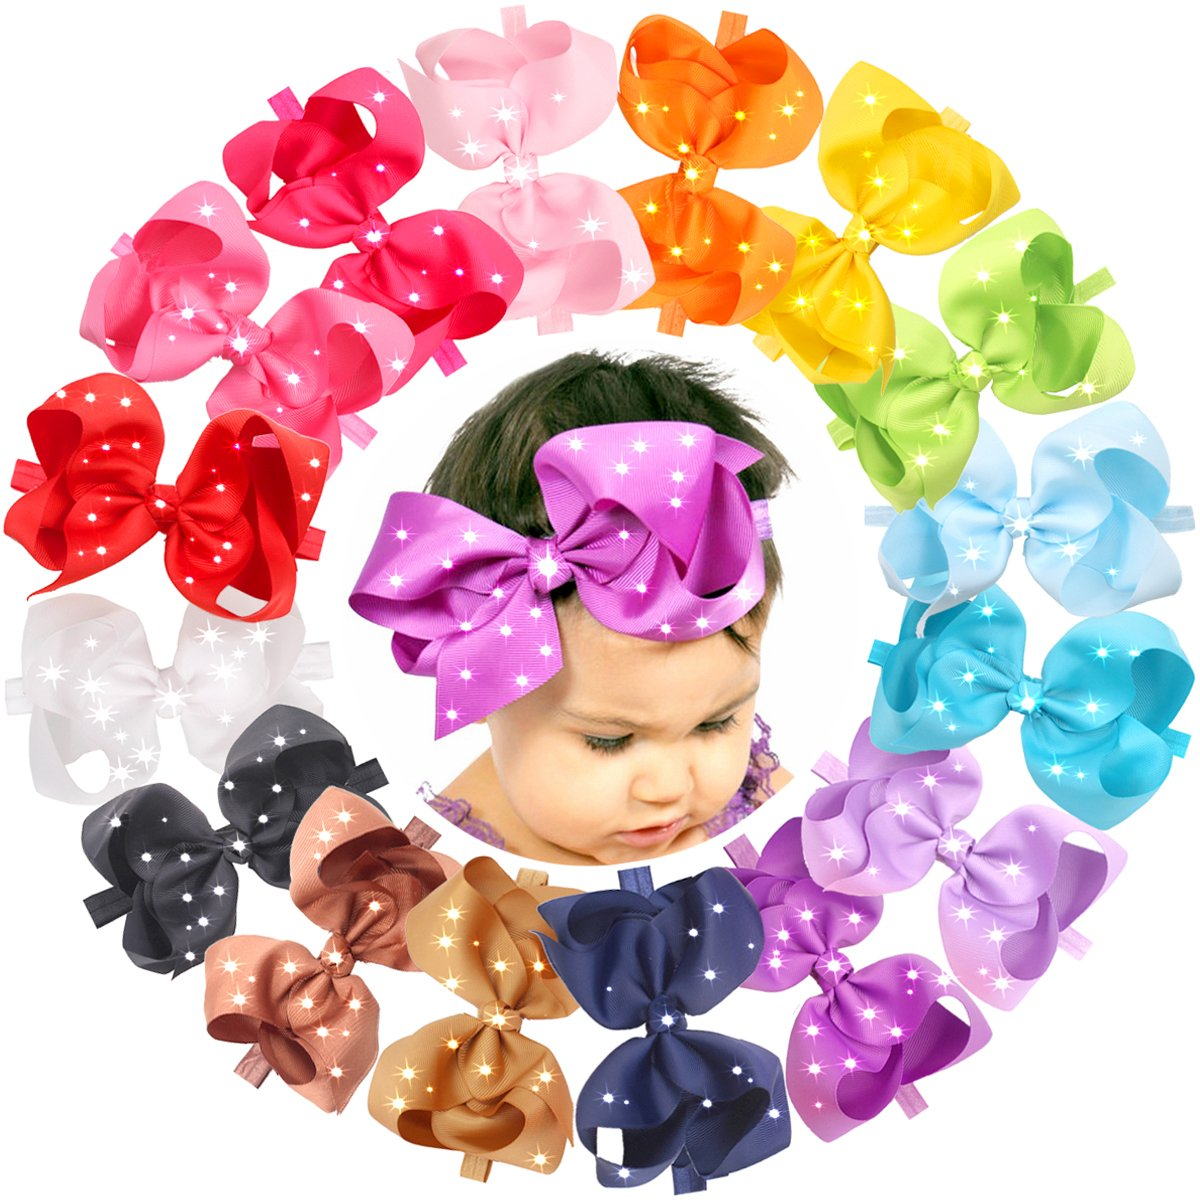 16pcs 6 inches Large Big Hair Bows With Sparkly Rhinestones CELLOT CELLOT-XY-R-c